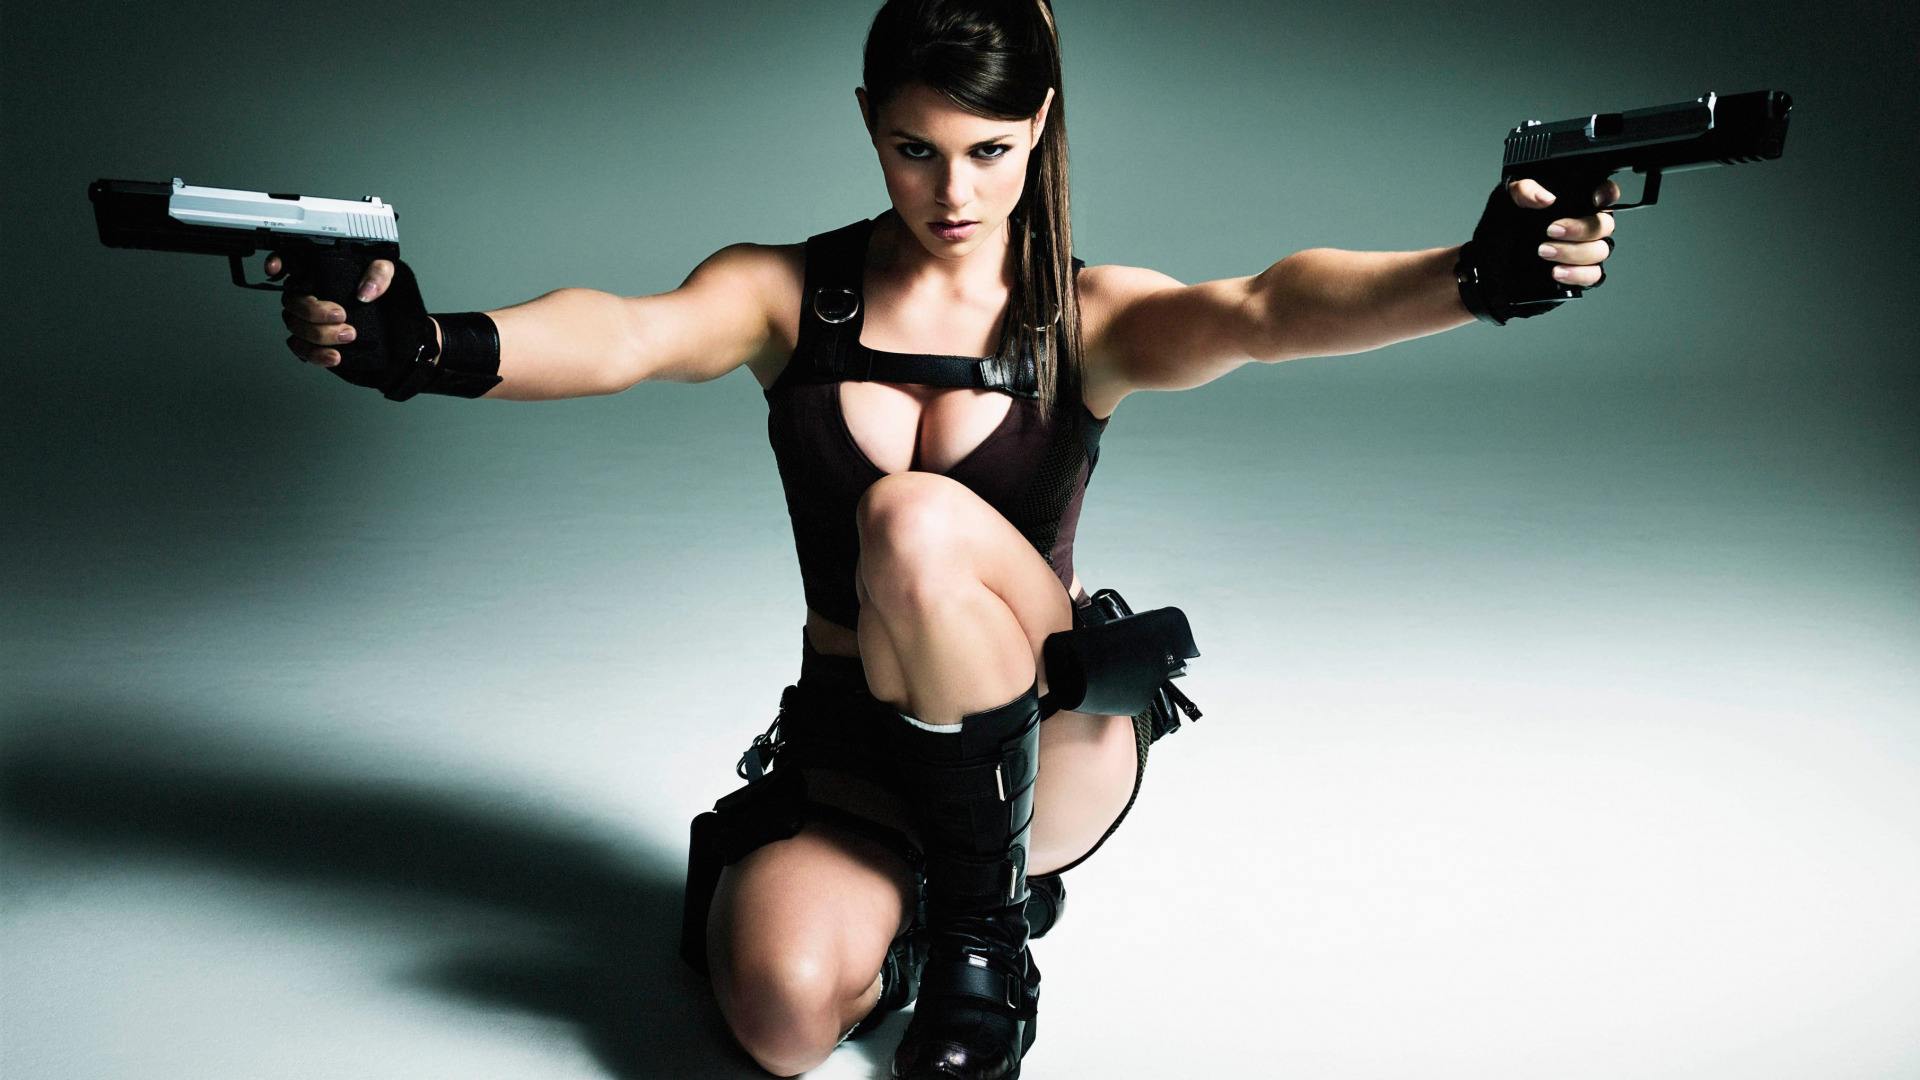 Lara croft vs monsters 3gp xxx pictures